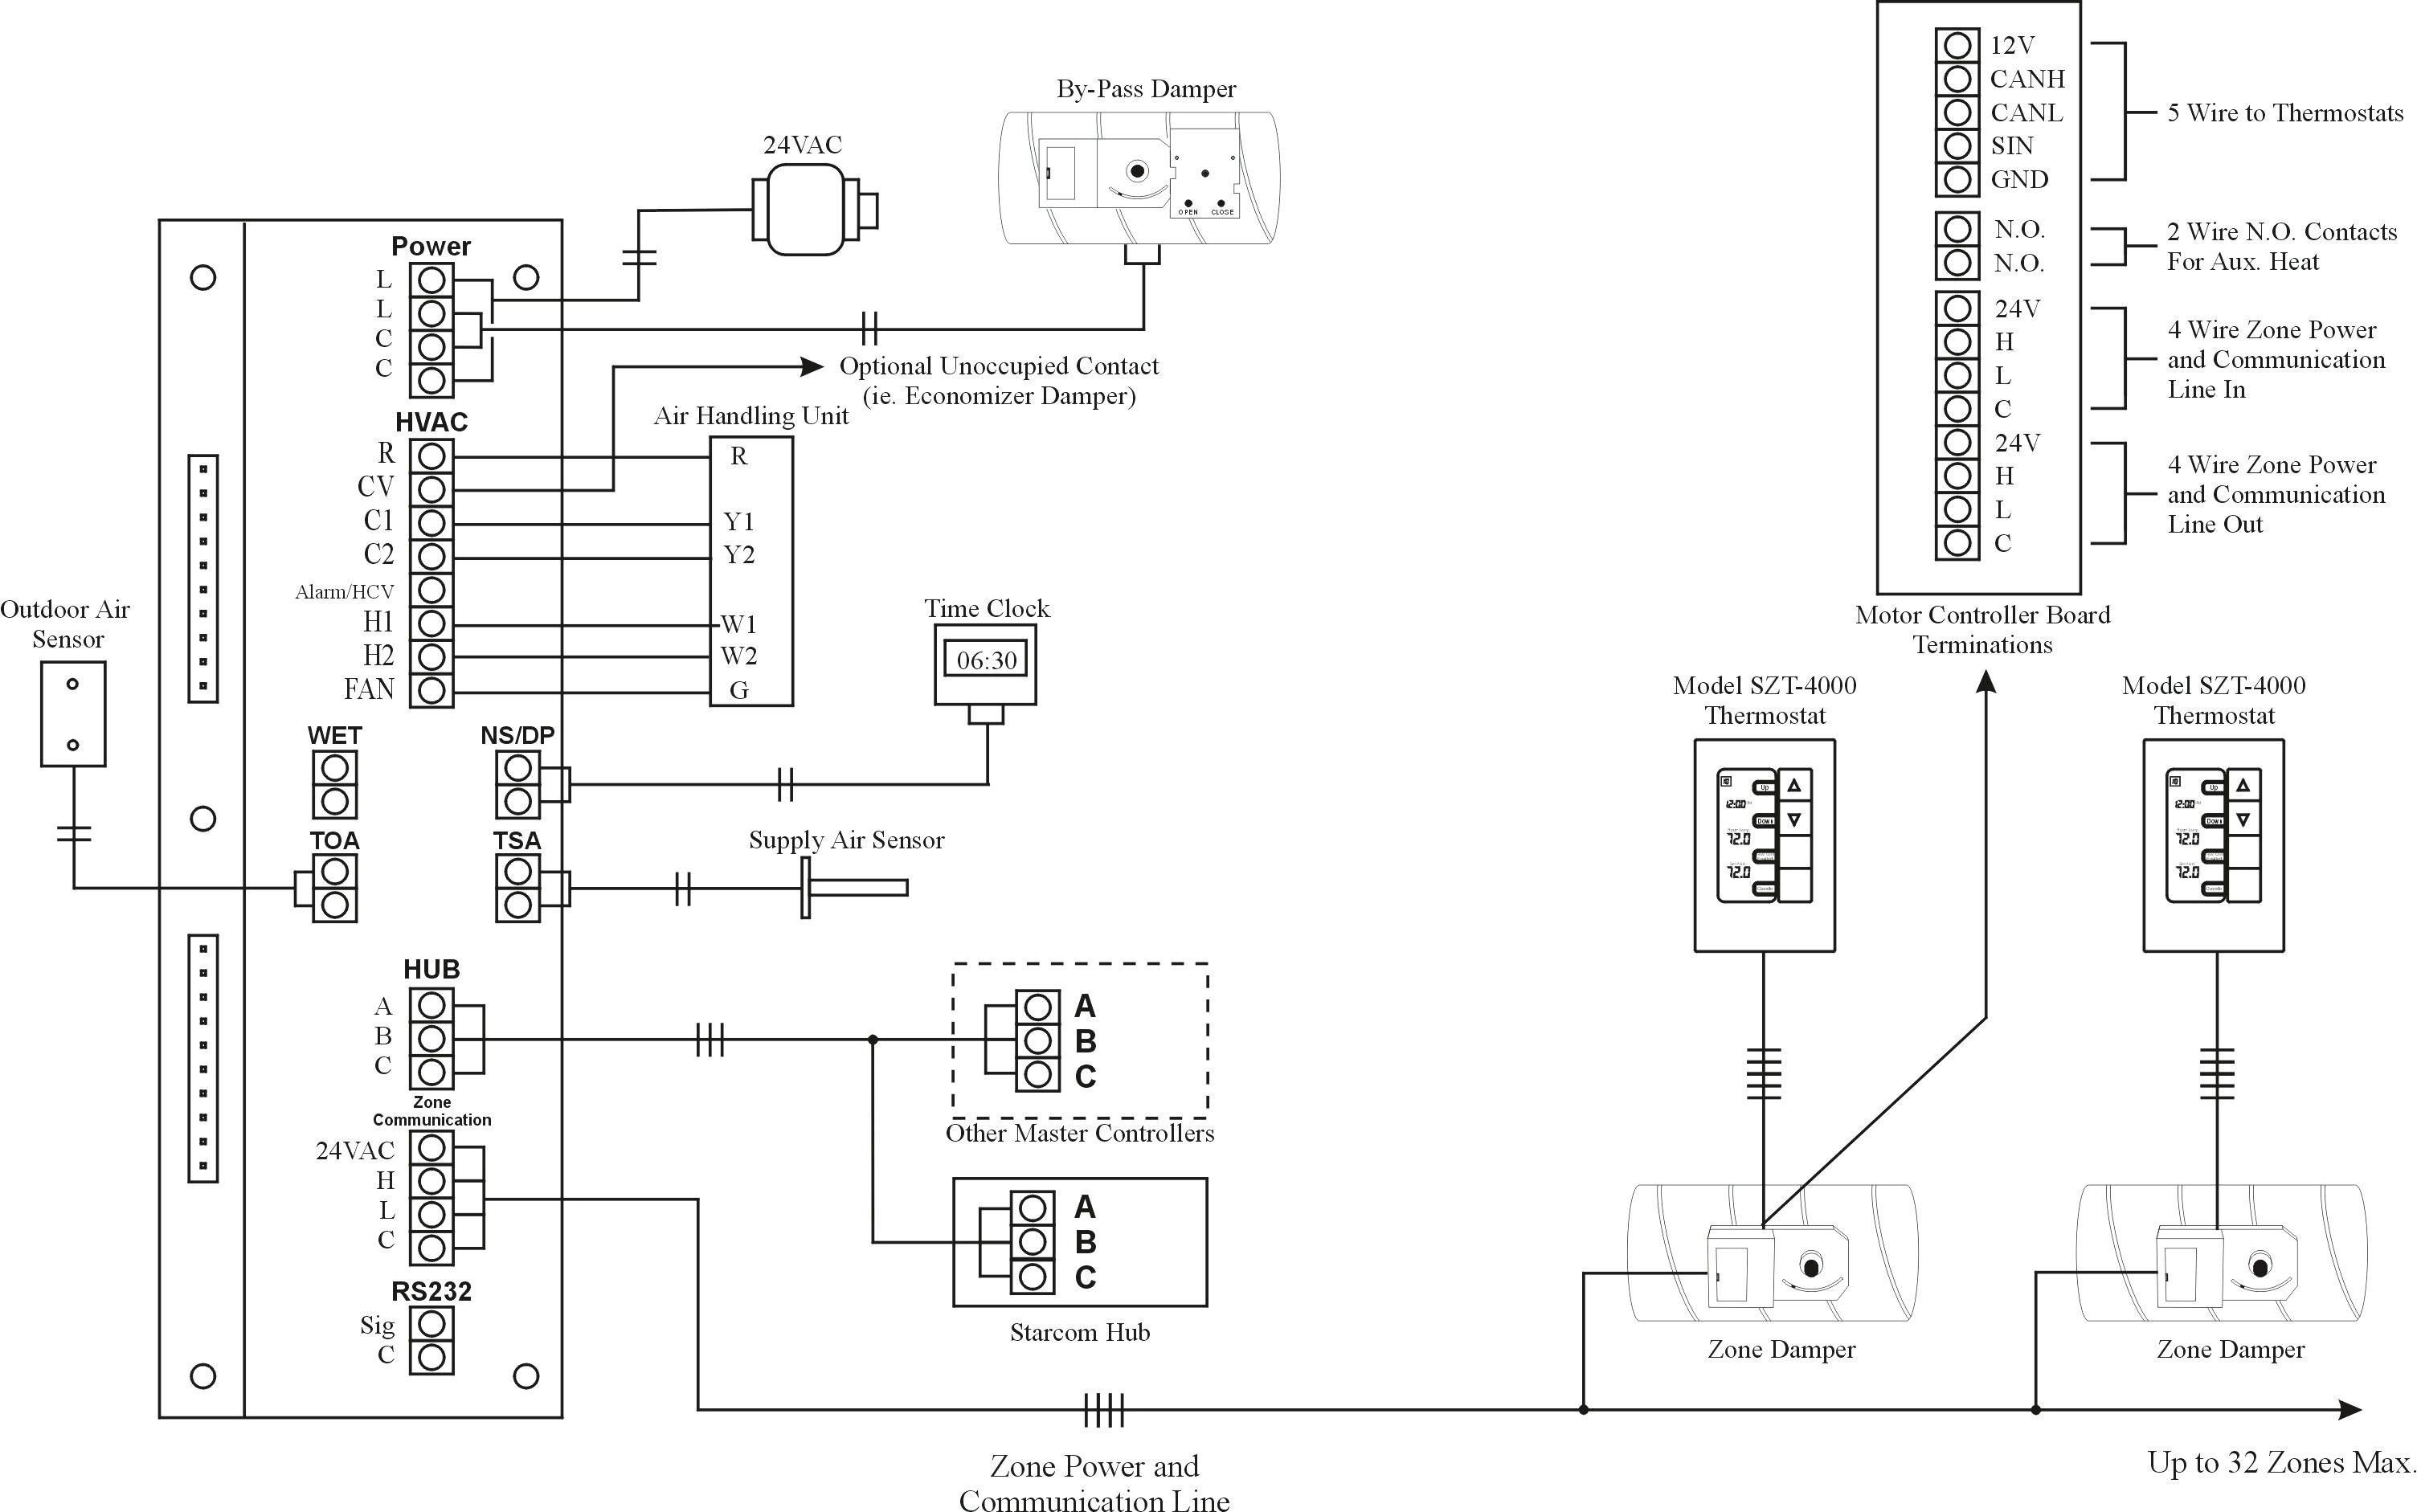 New Wiring Diagram Cadet Baseboard Heater | Home security systems, Alarm  system, Diagram | Code Alarms Wiring Diagram For Hornet |  | Pinterest